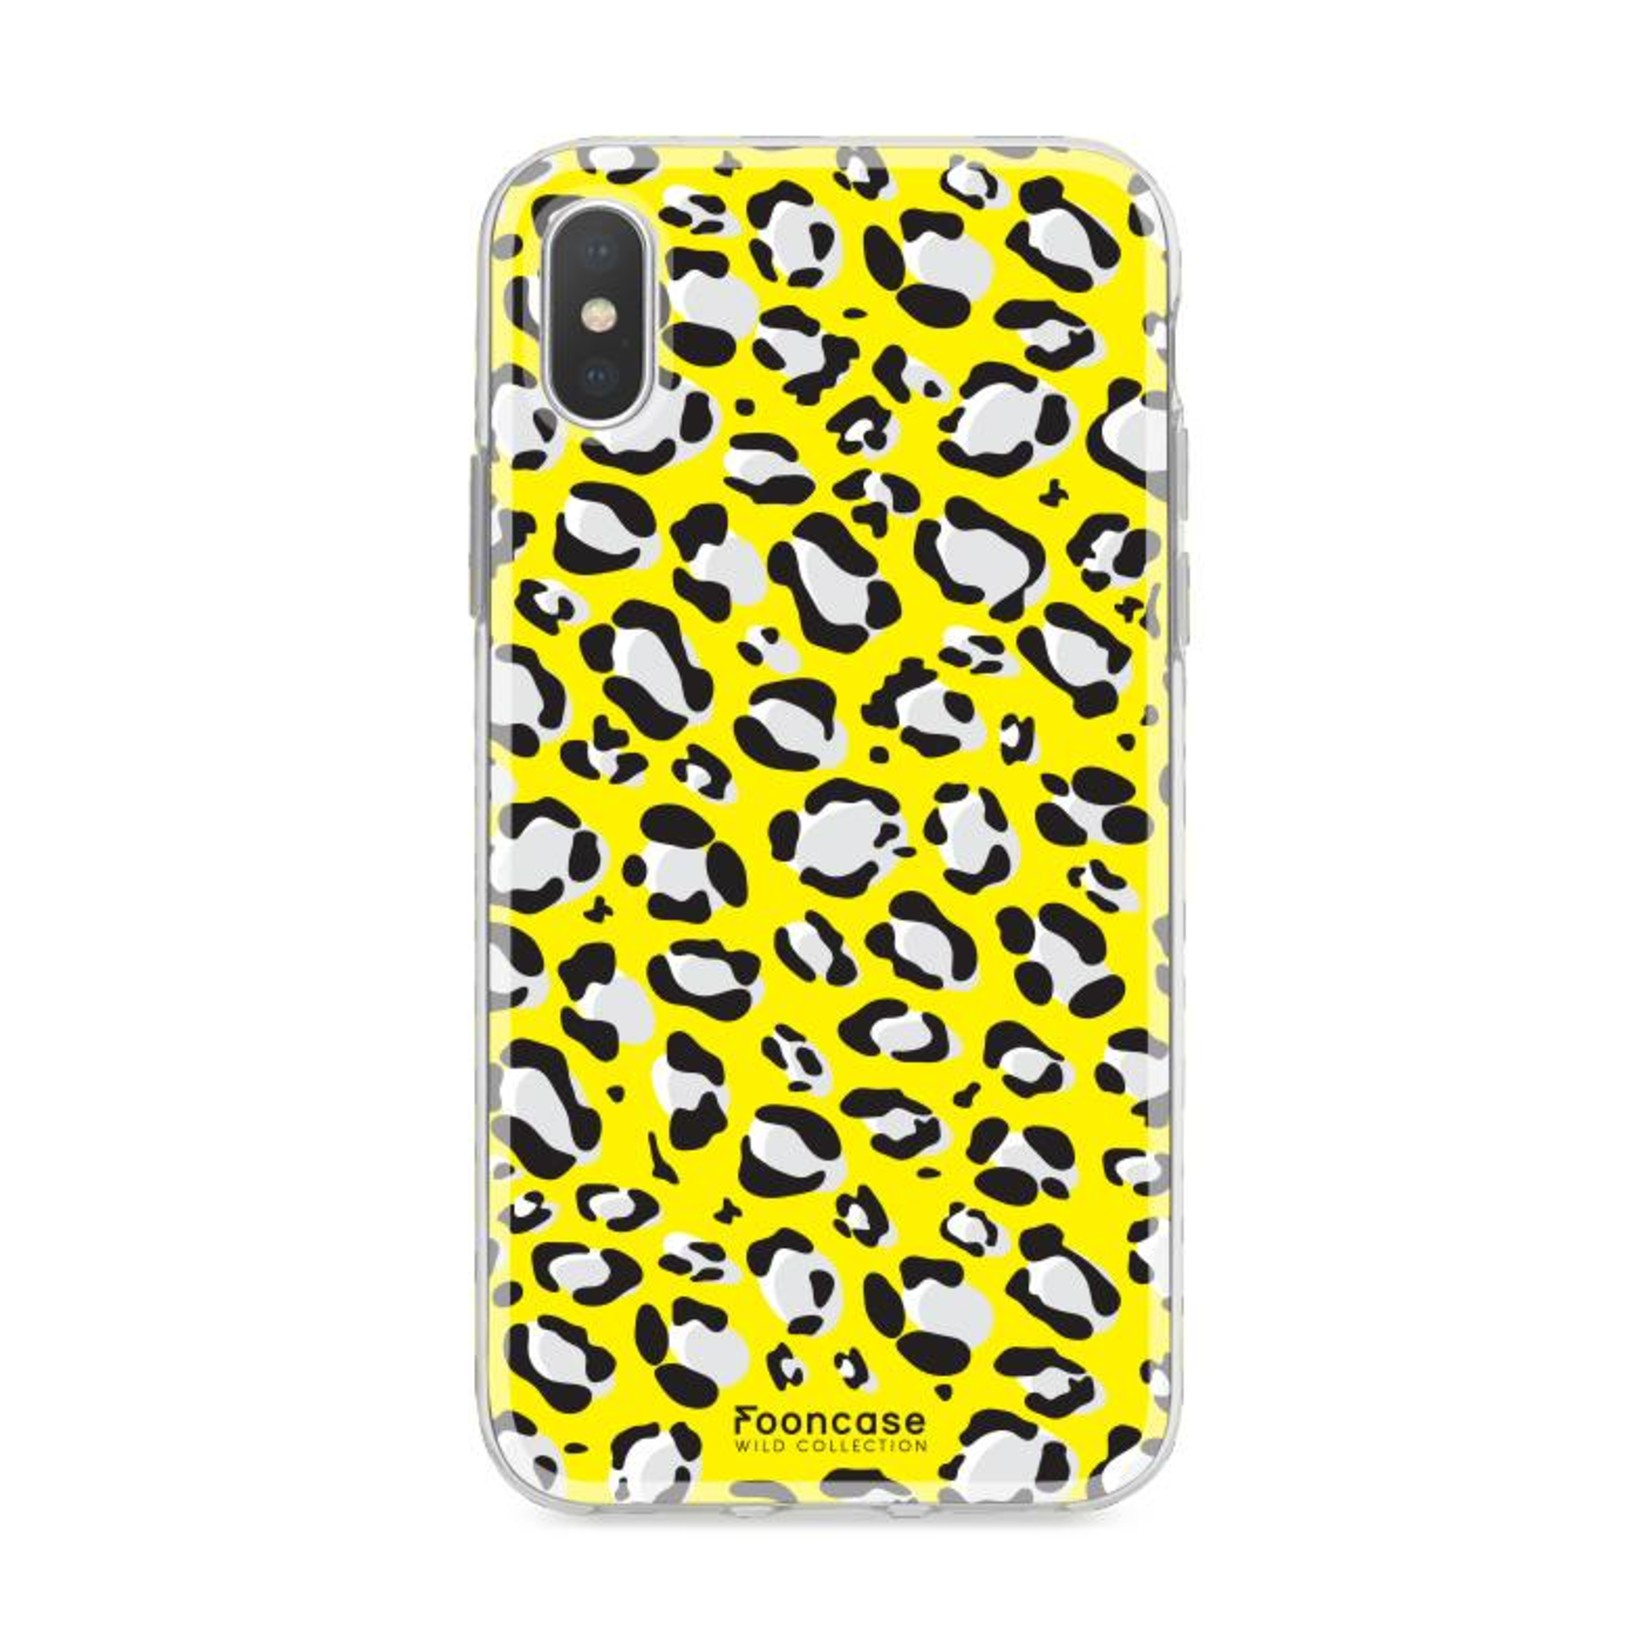 FOONCASE iPhone X hoesje TPU Soft Case - Back Cover - WILD COLLECTION / Luipaard / Leopard print / Geel